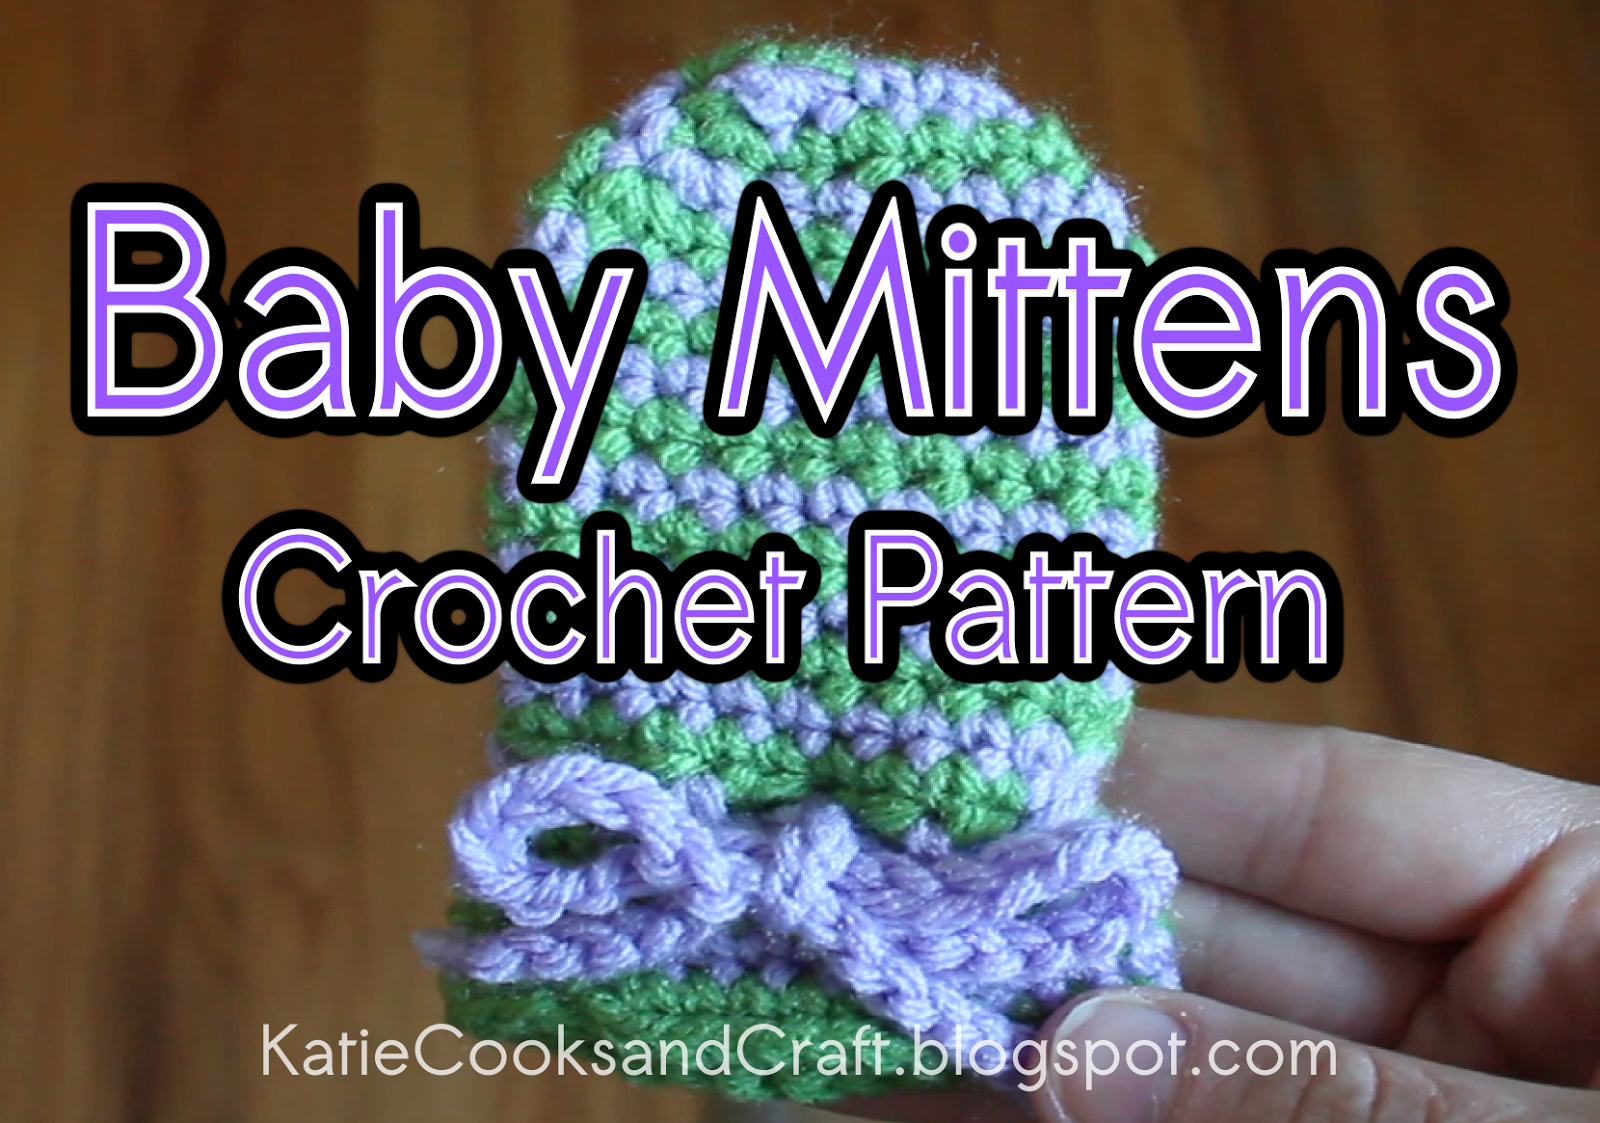 Katie cooks and crafts spiral baby mittens these mittens are great for cold weather or for no scratch mittens this pattern uses us crochet bankloansurffo Images